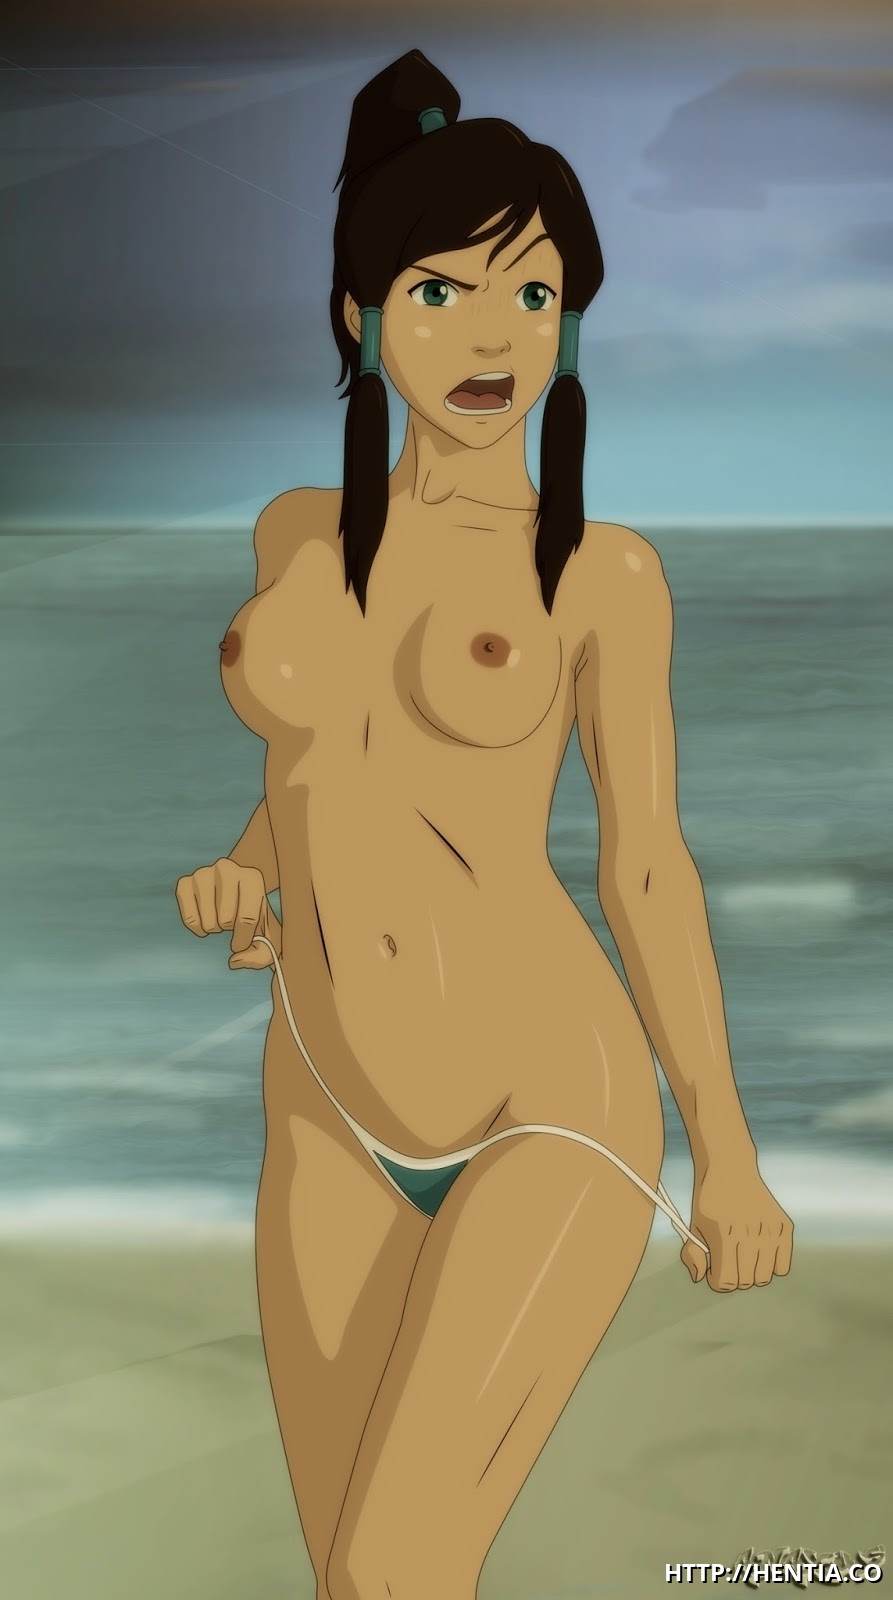 All that Korra is wearing right now is a tiny bikini and you want her to remove them too?!